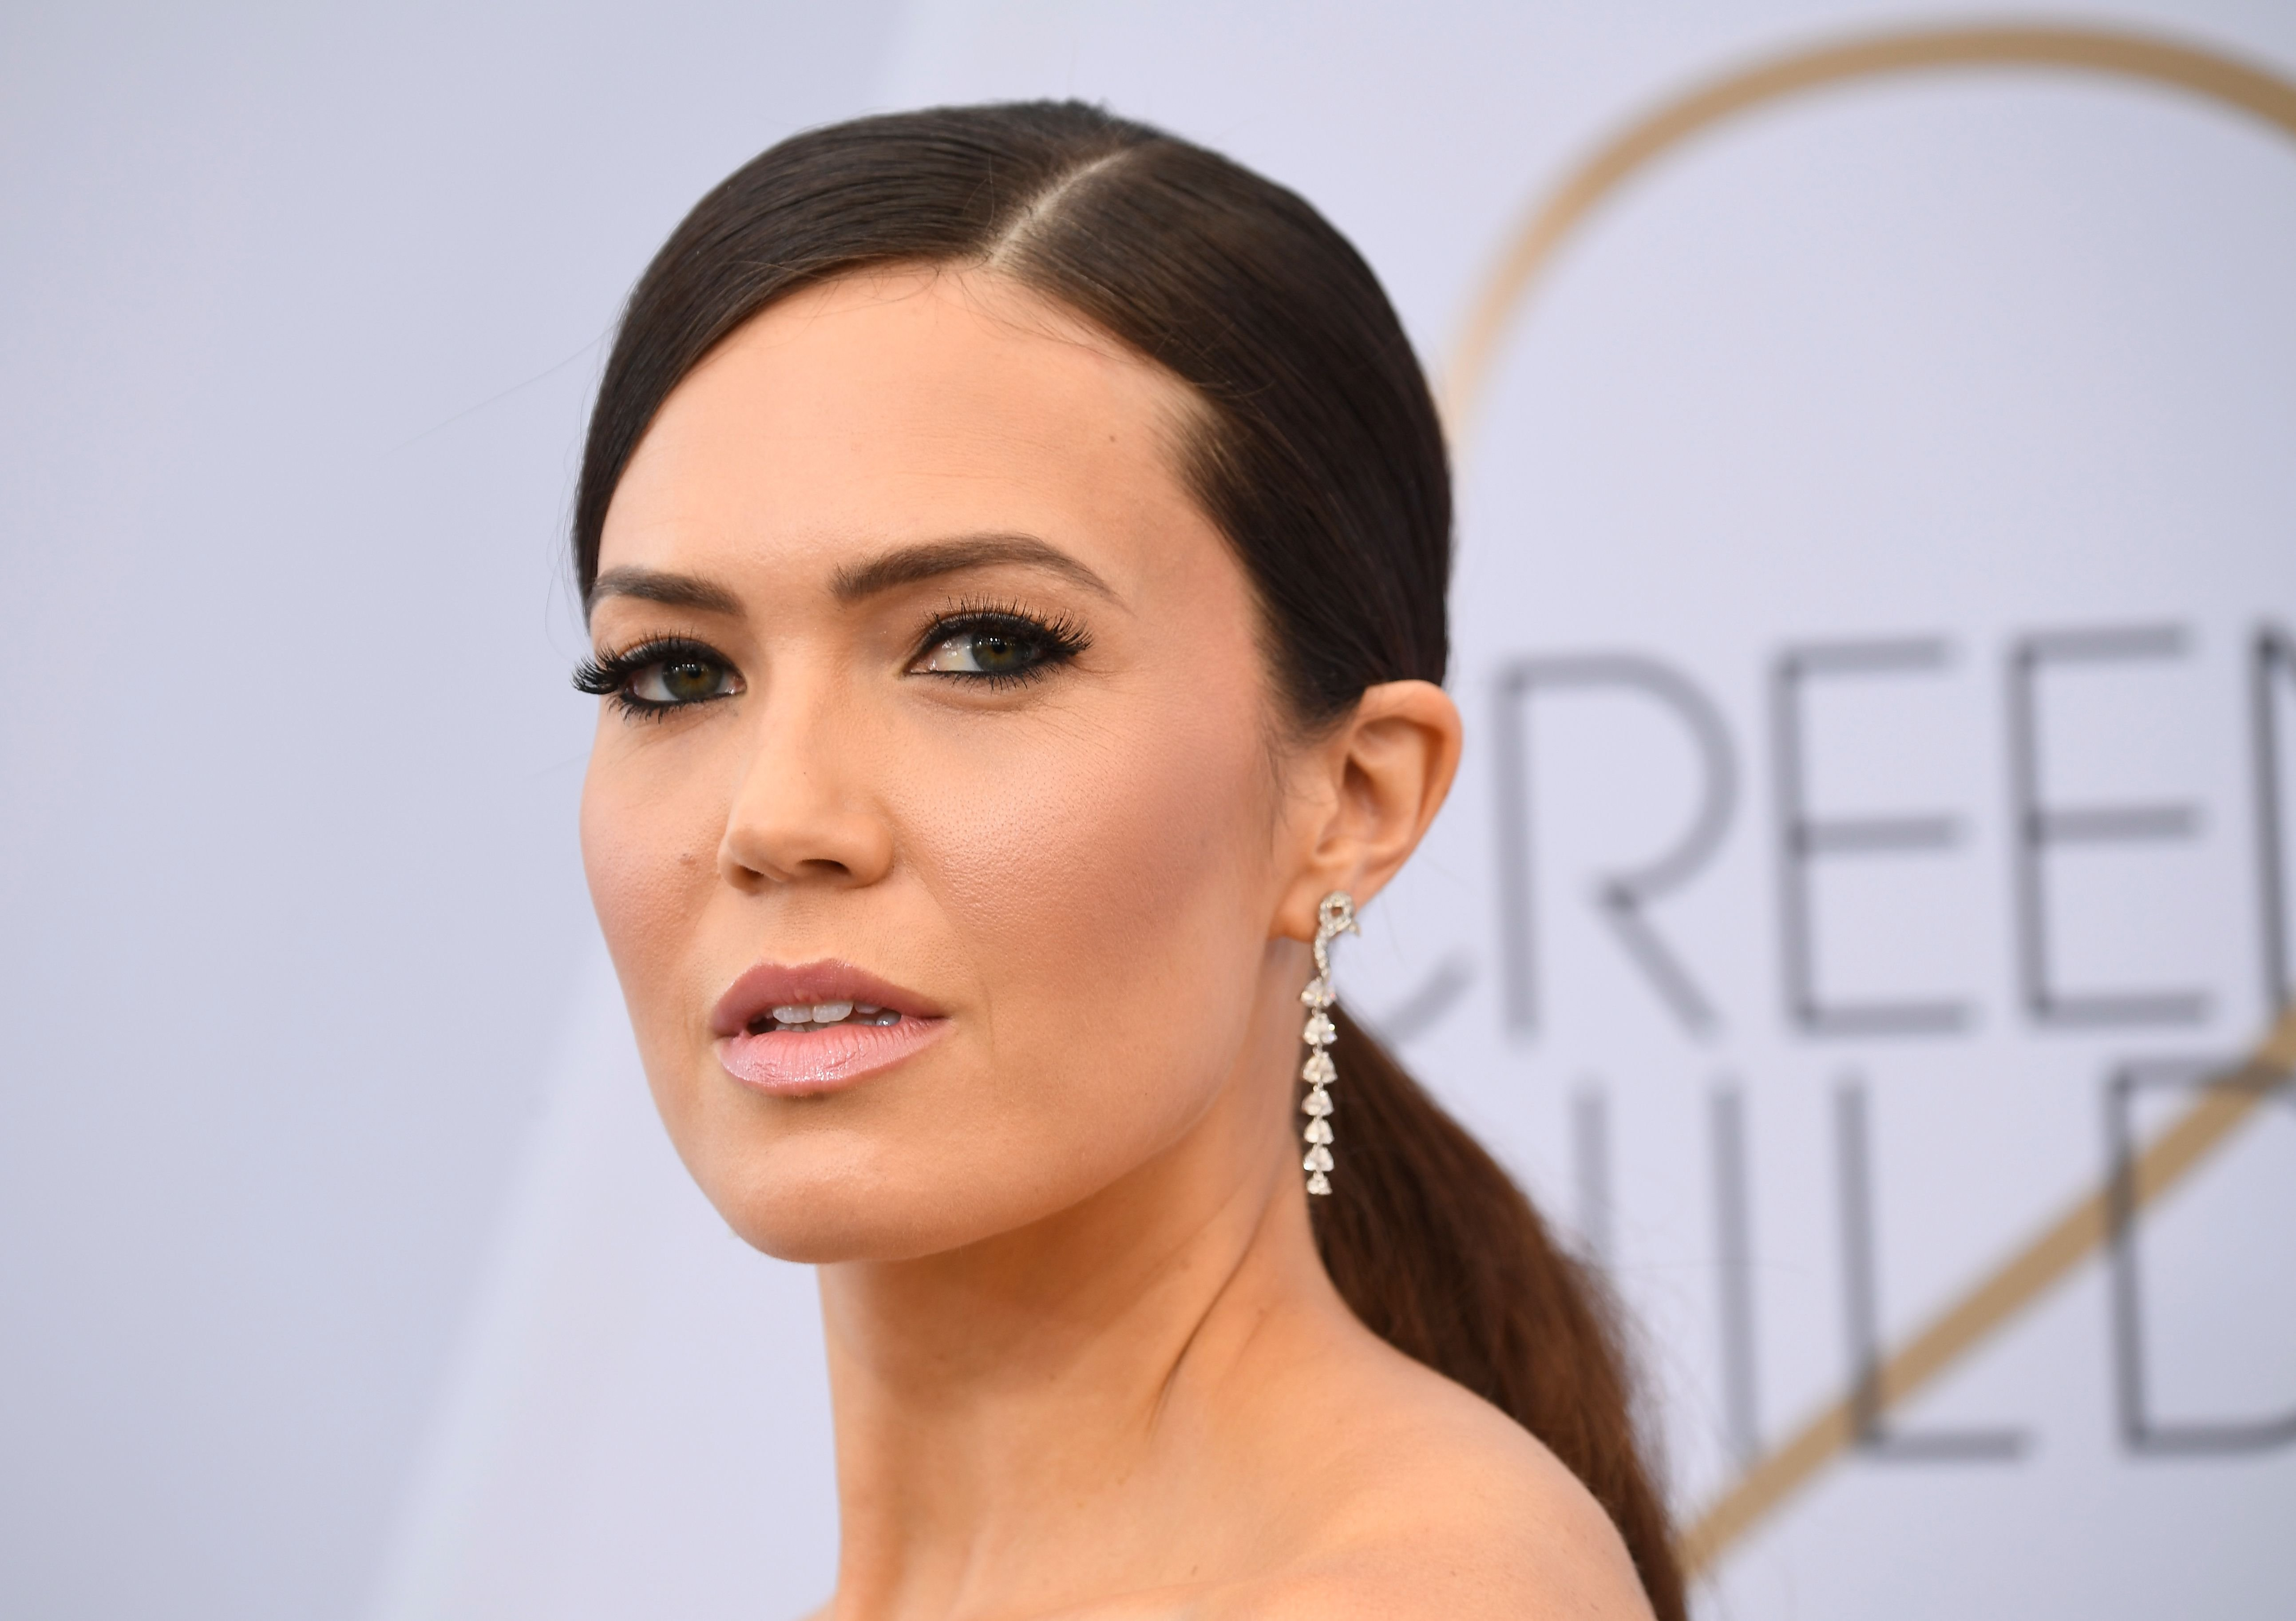 Mandy Moore during the 25th Annual Screen Actors Guild Awards at The Shrine Auditorium on January 27, 2019 in Los Angeles, California. | Source: Getty Images